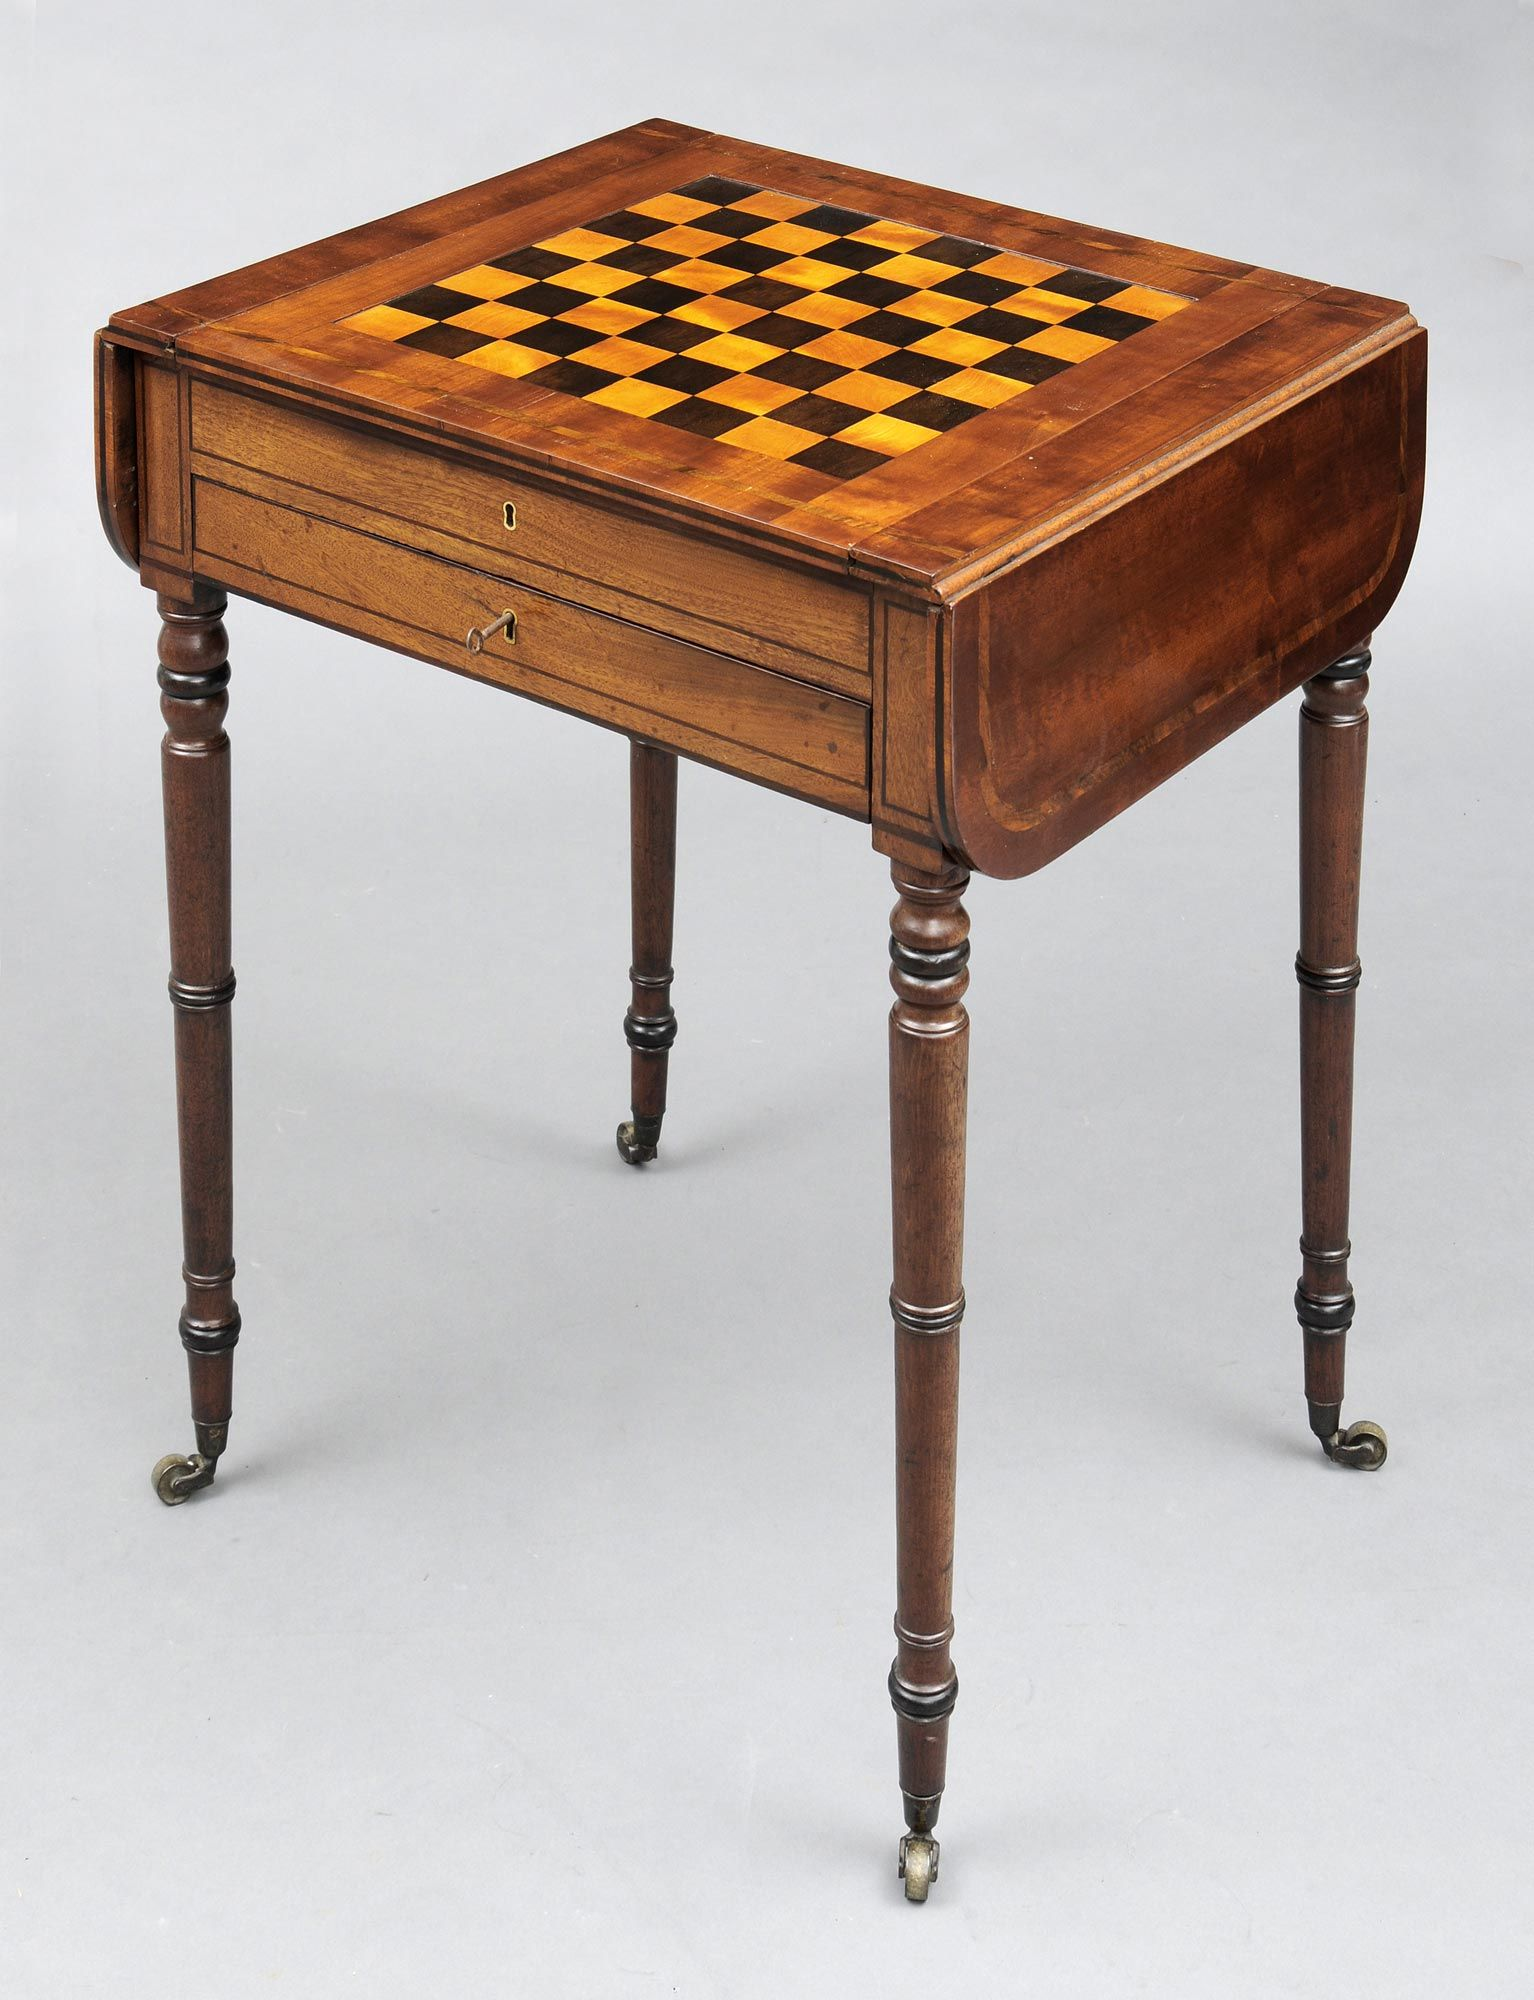 English Antique Regency Table